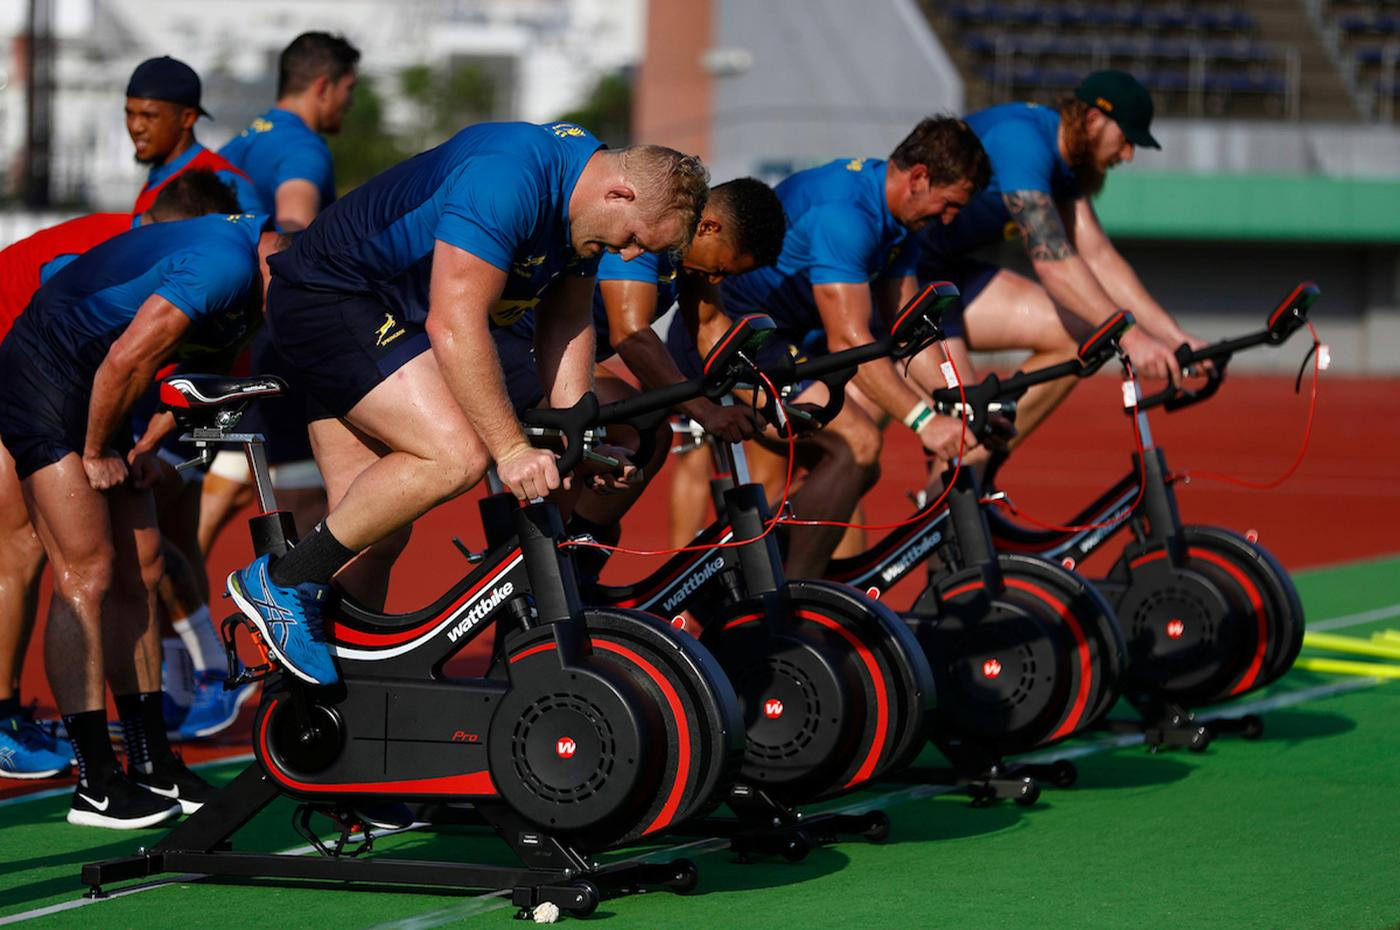 The South African rugby team training on Wattbikes at their training venue in Japan